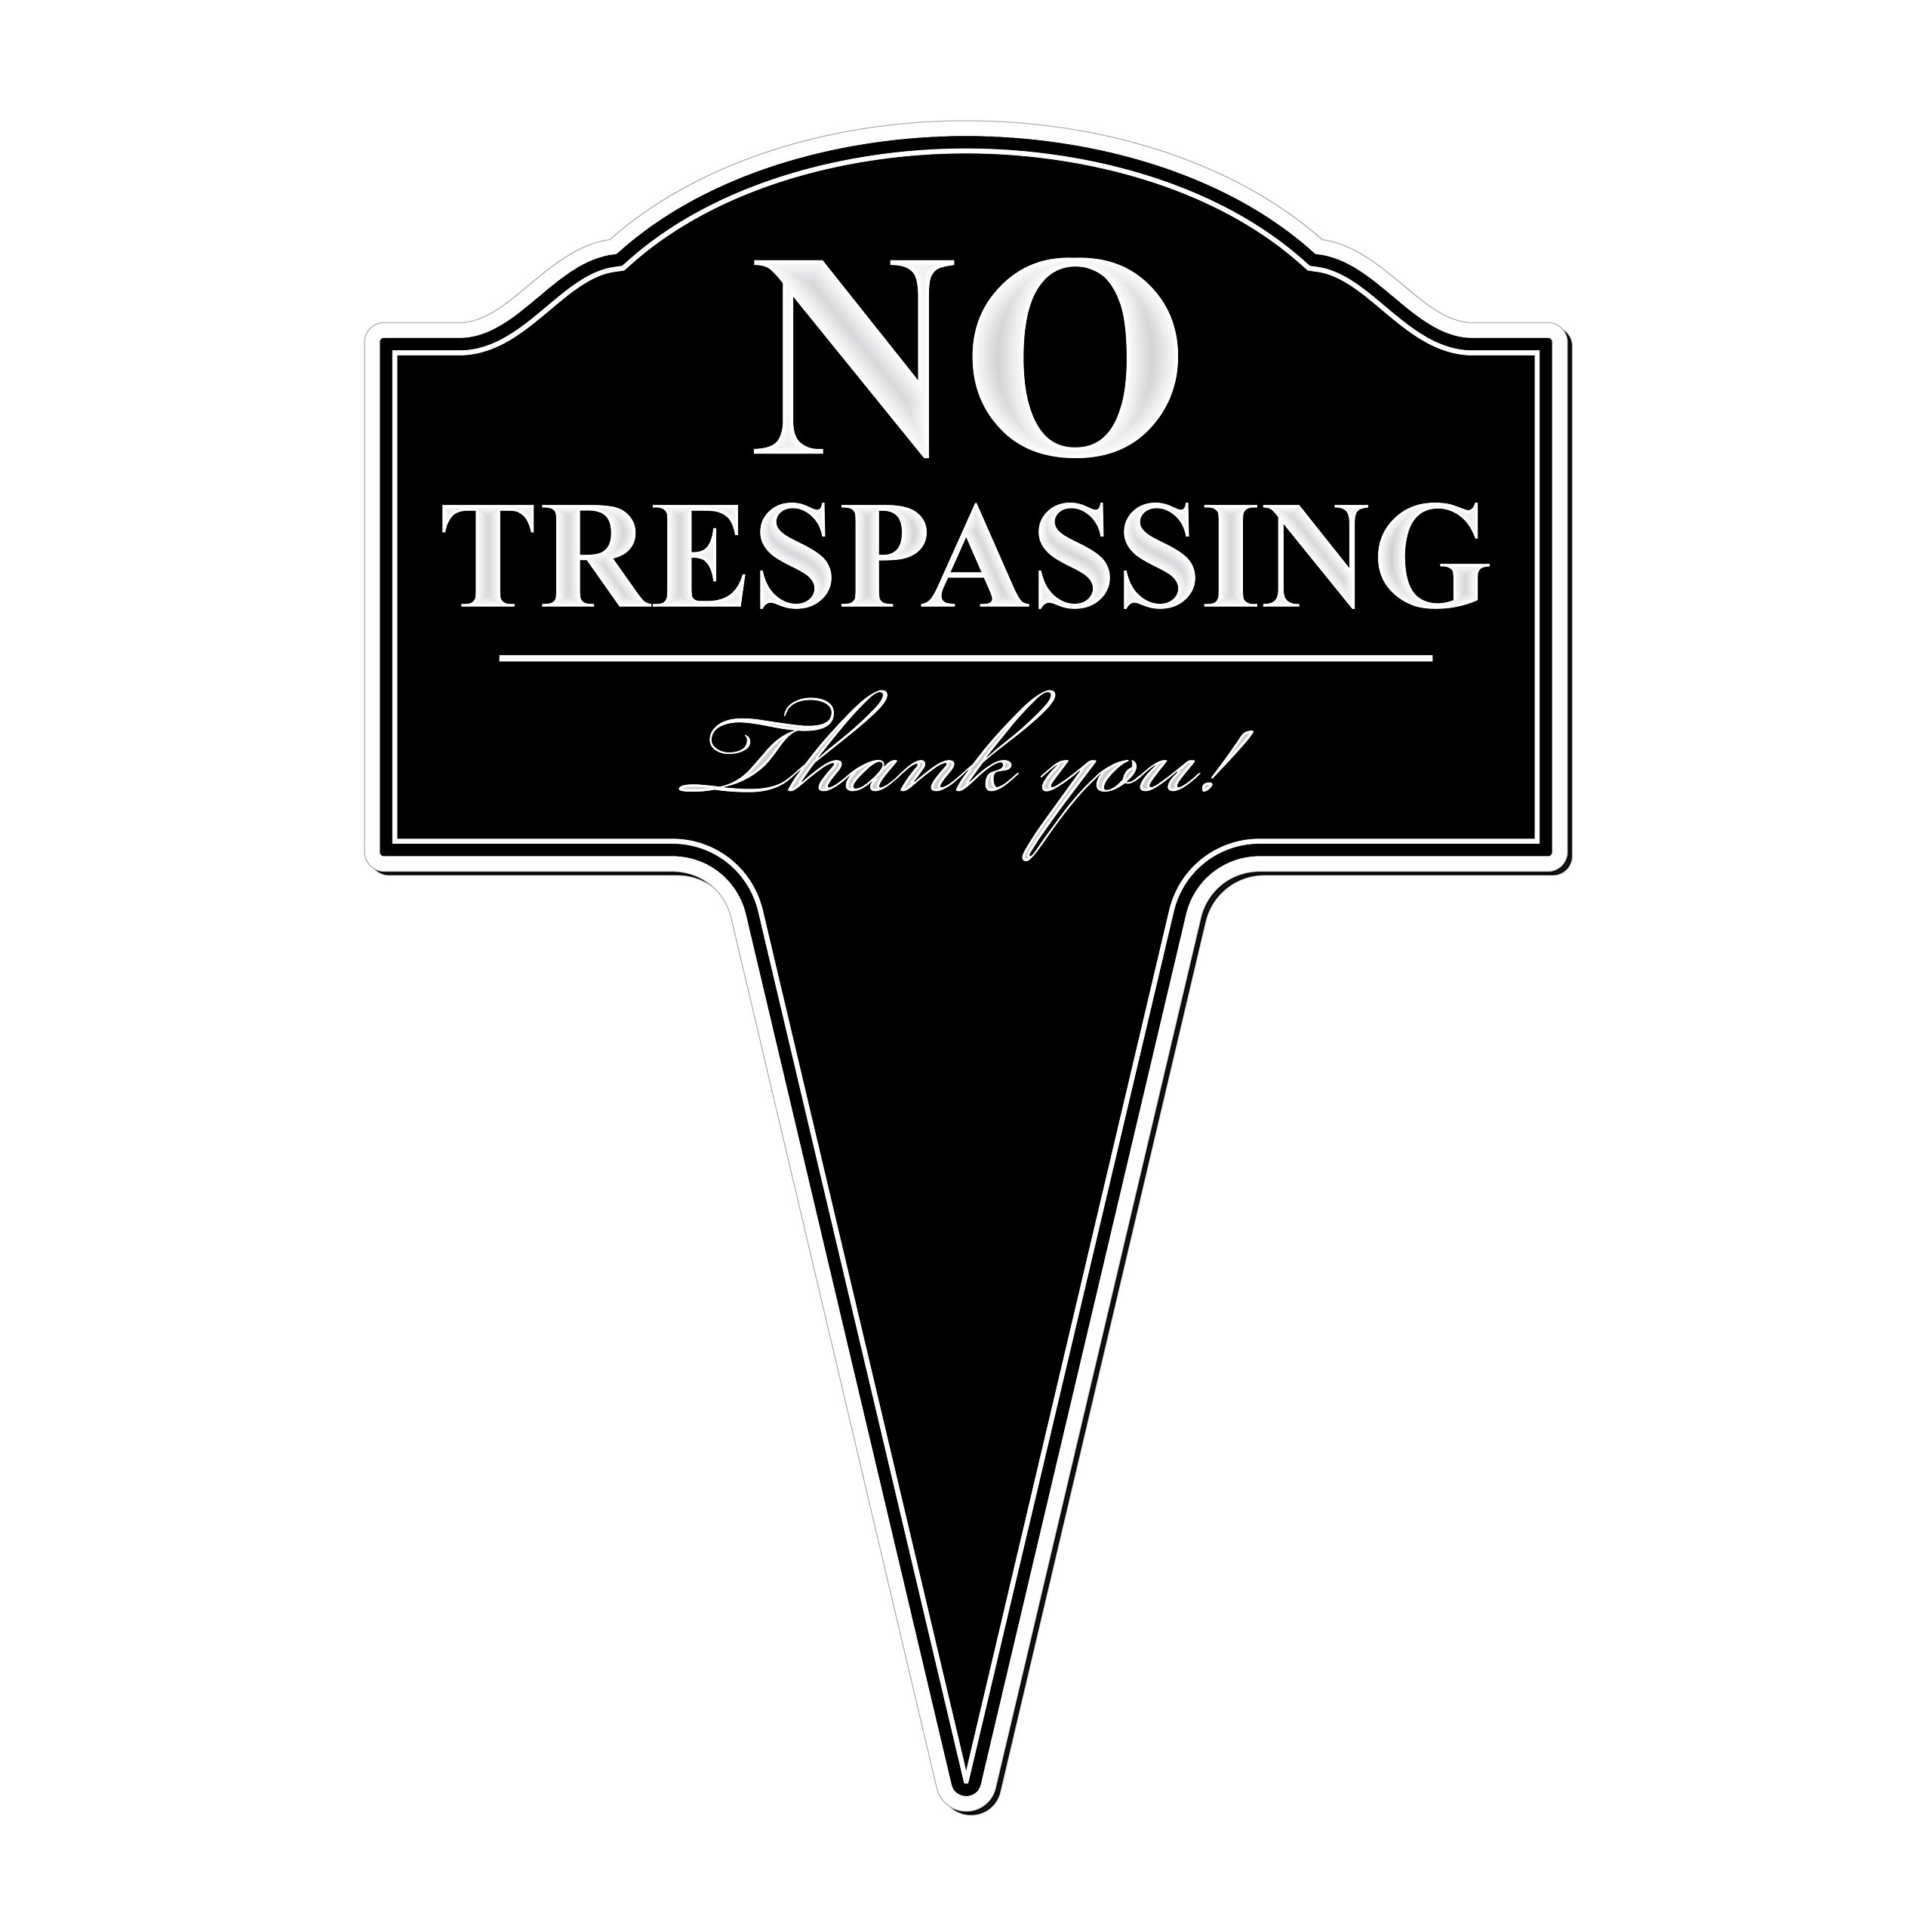 MRC Wood Products No Trespassing Aluminum Yard Sign with Stake Included 10x14